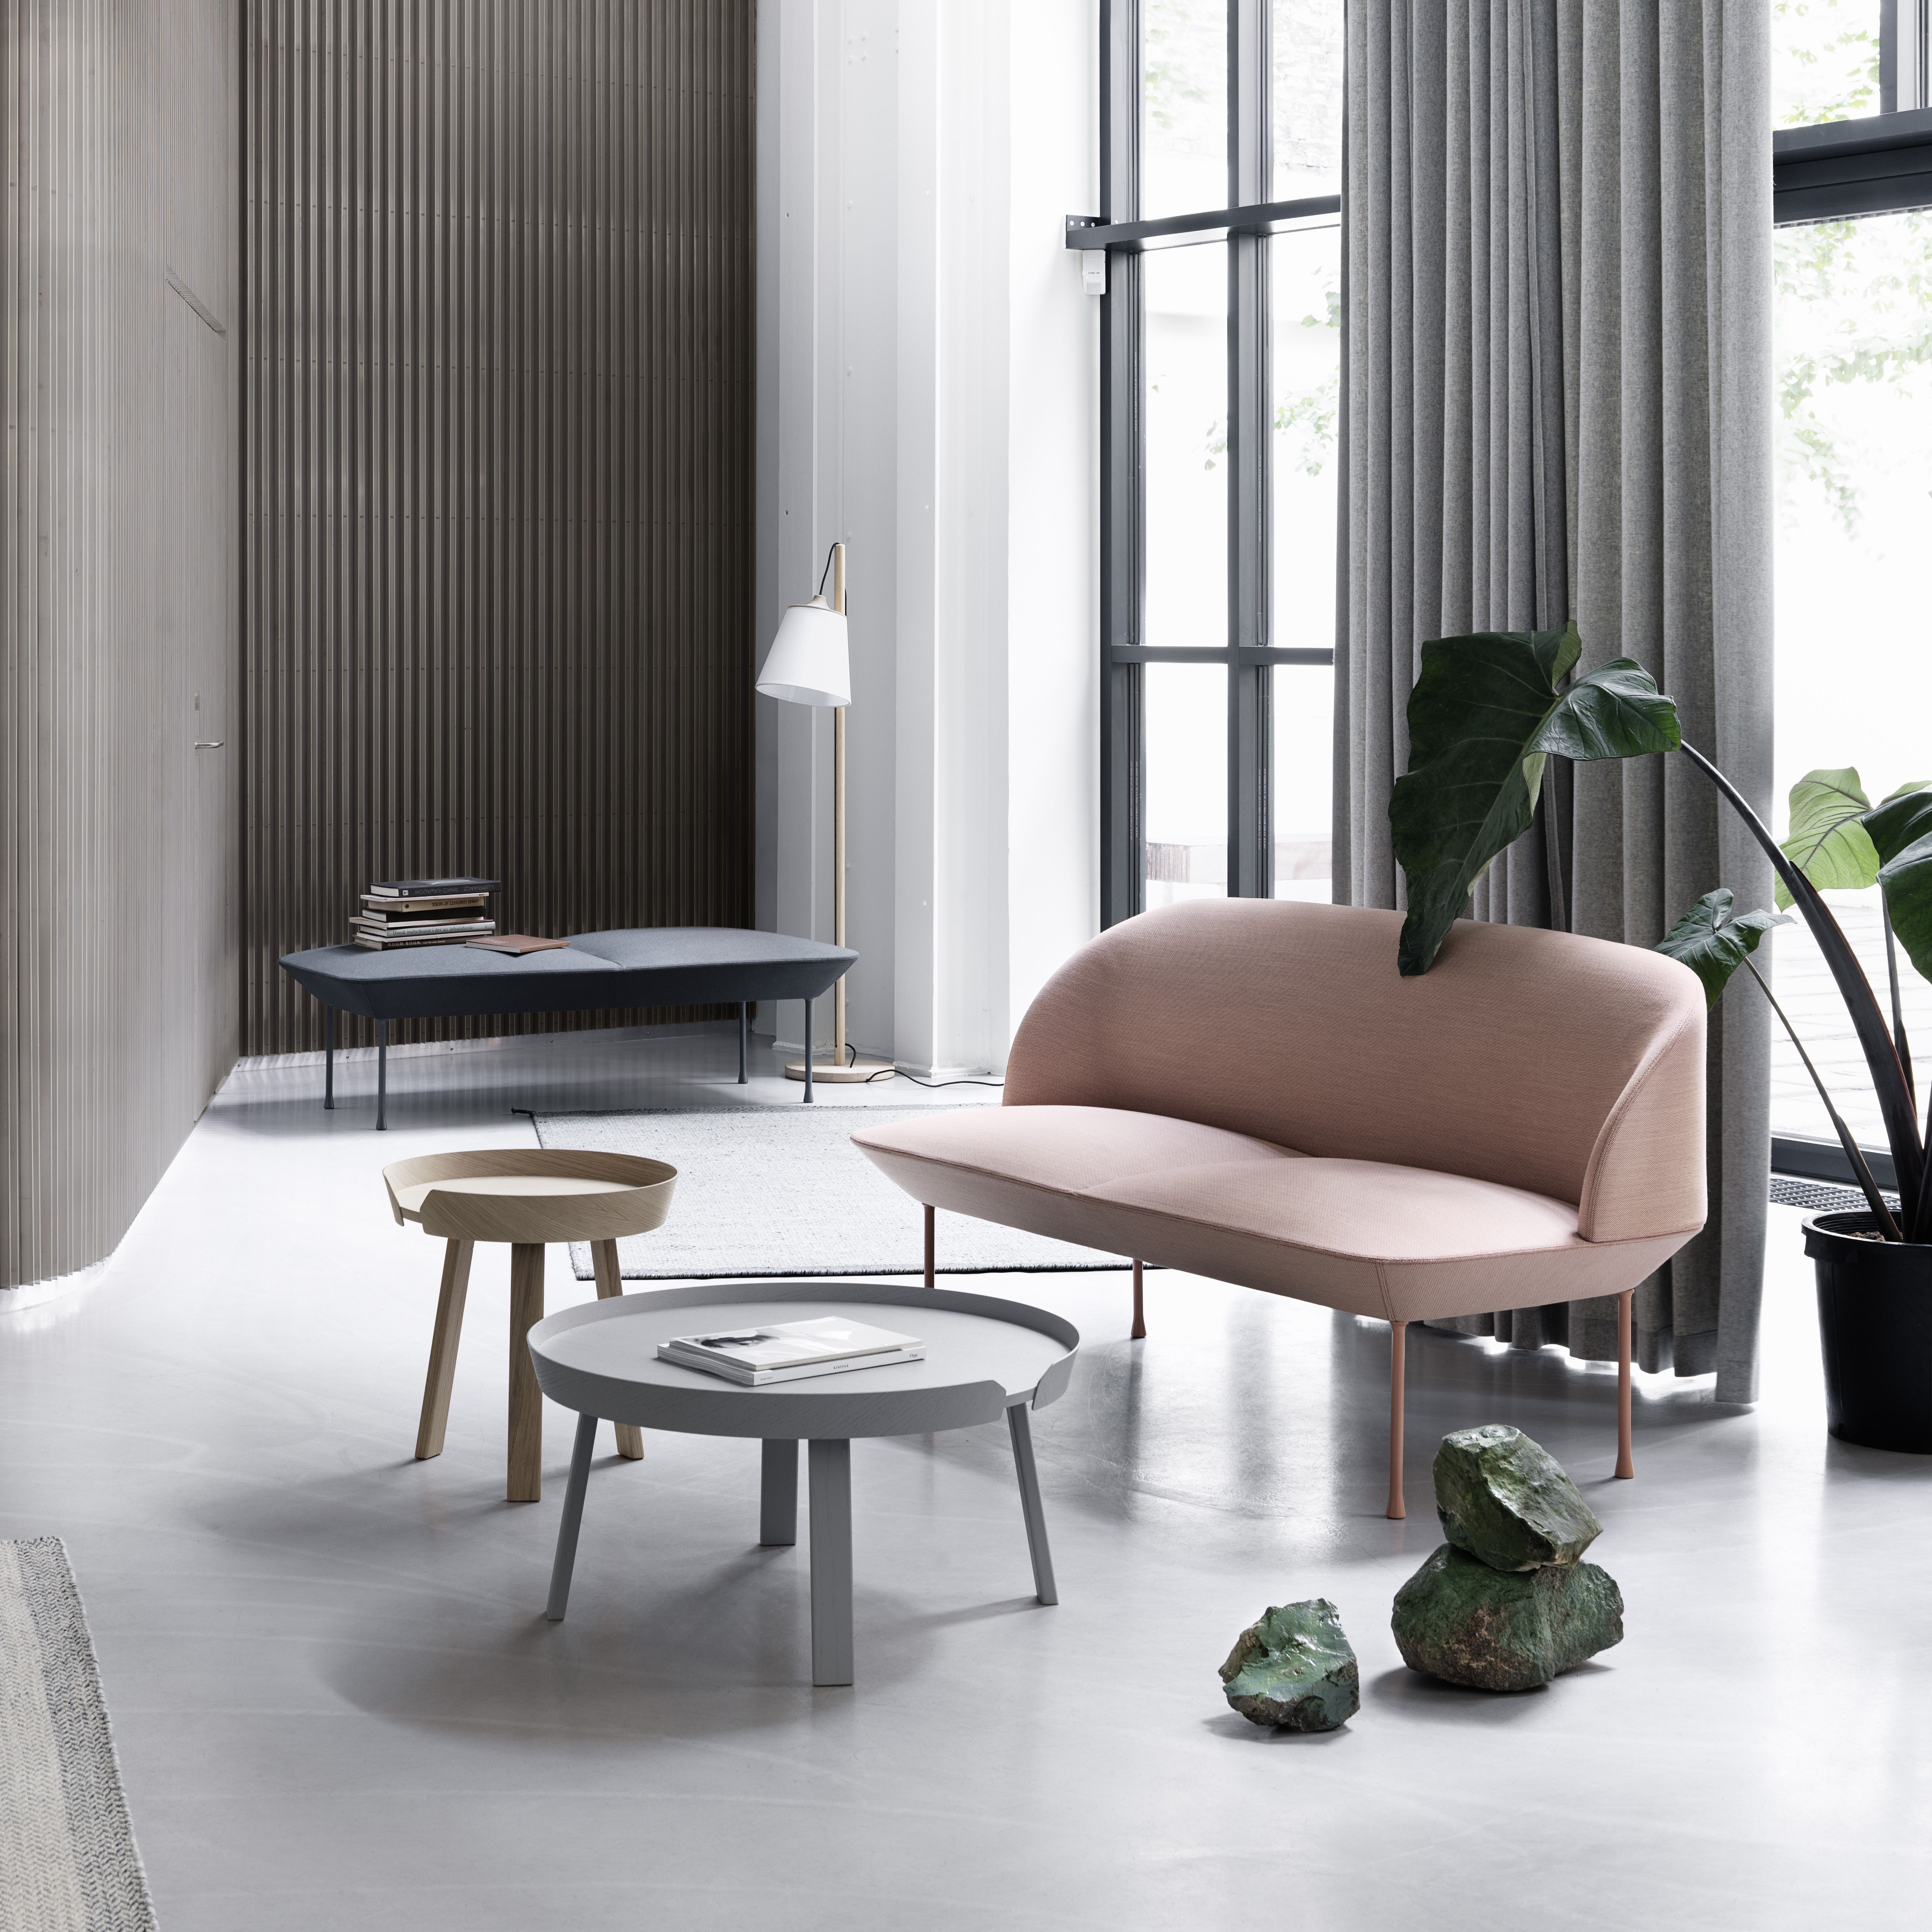 The Oslo Sofa, designed by Anderssen & Voll for Muuto, encompasses ...